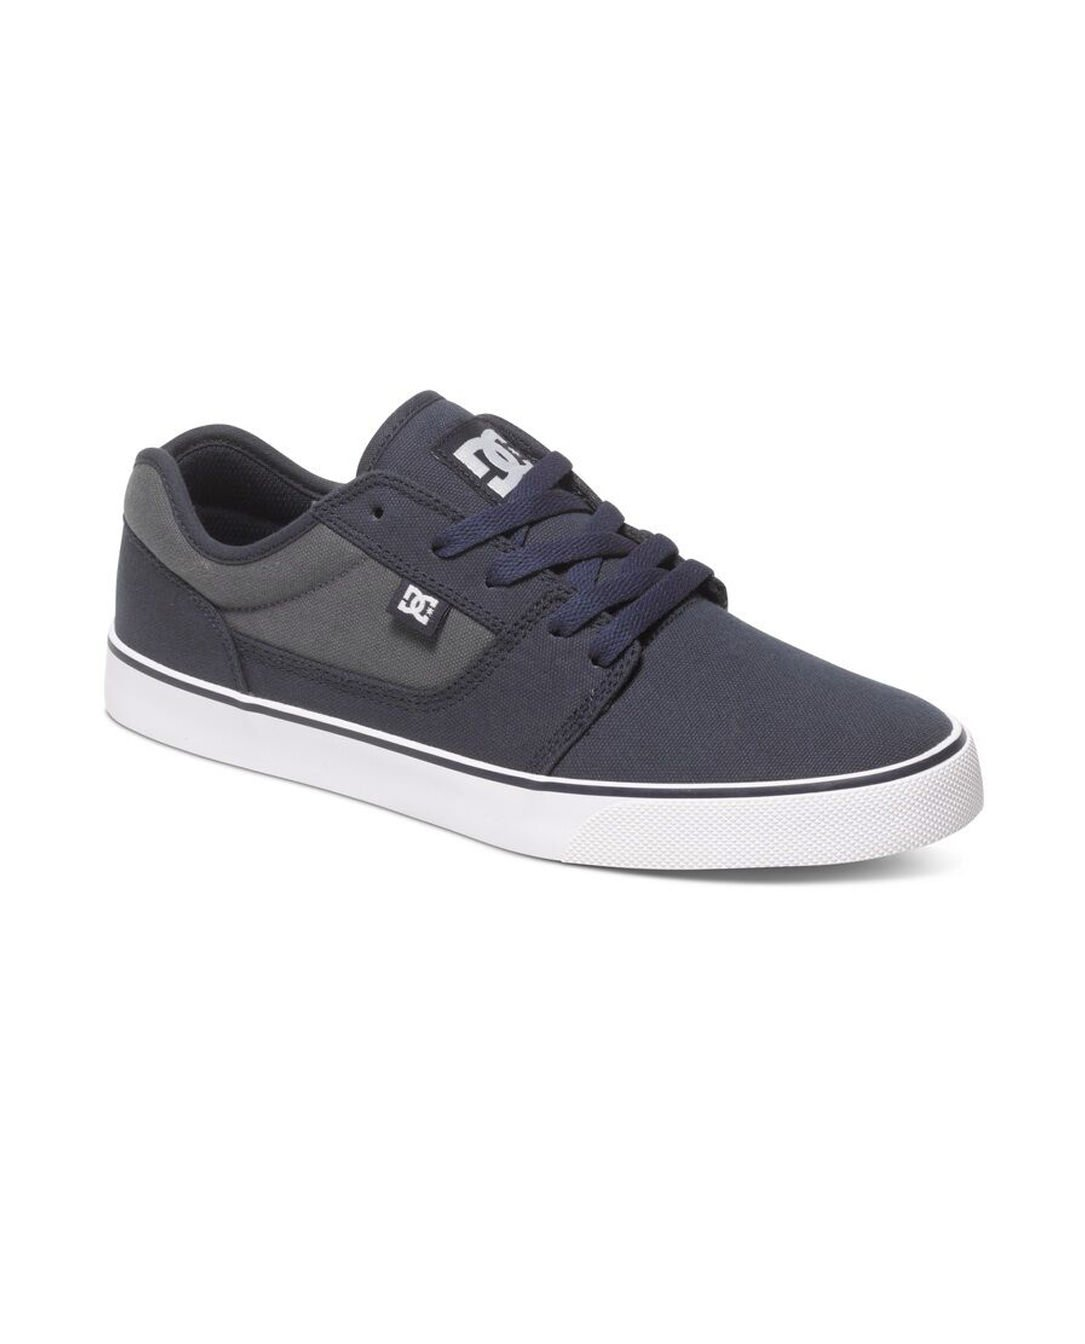 DC SHOES SCARPE TONIK TX - LM BOARD STORE